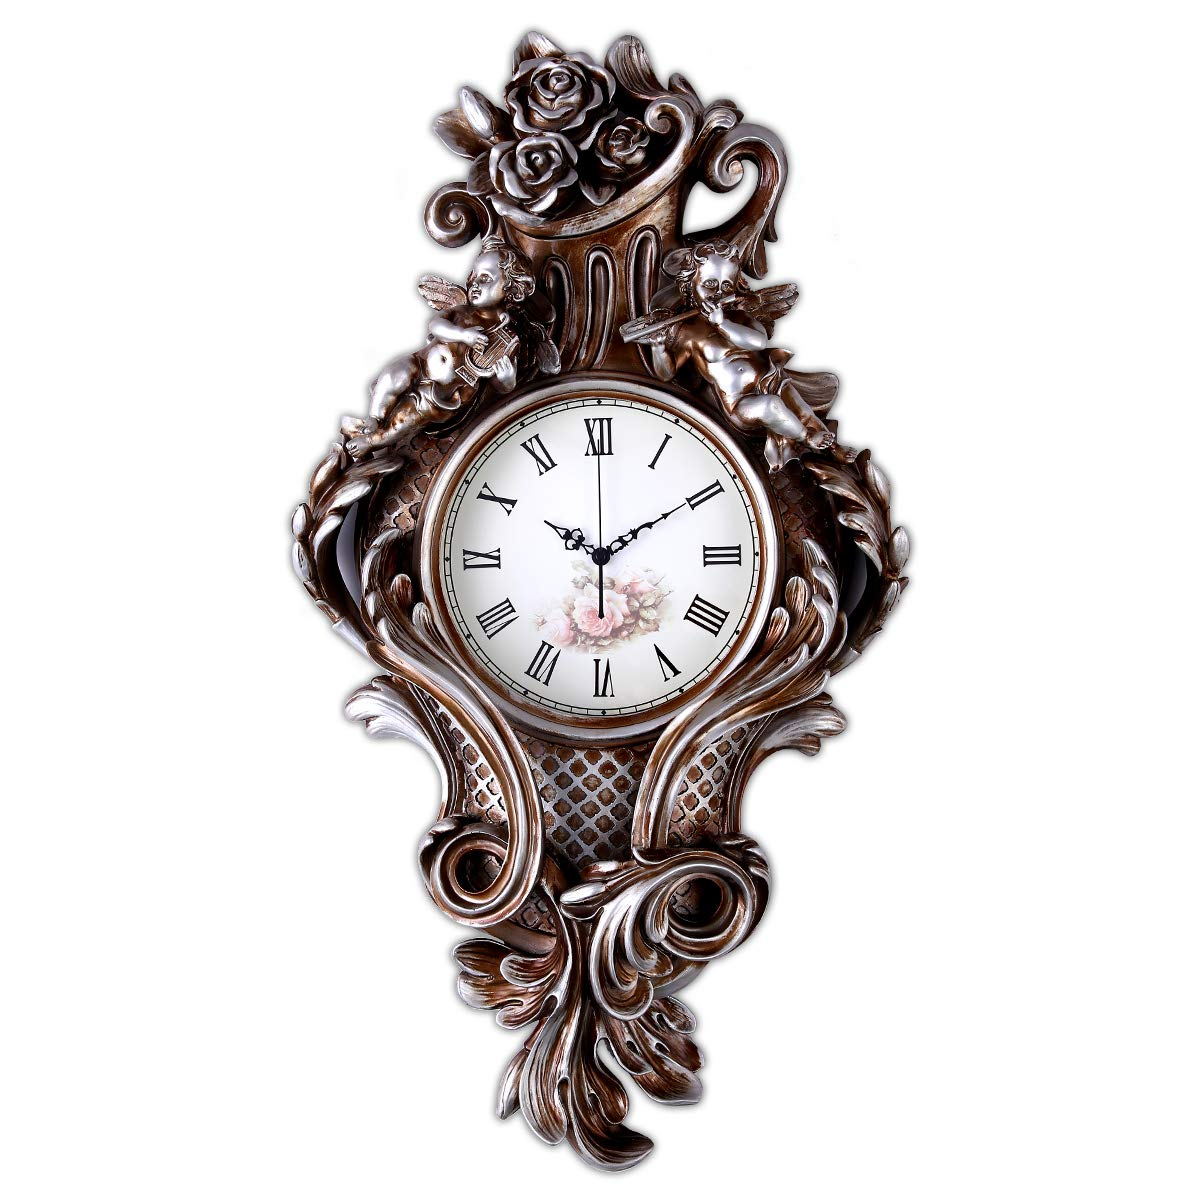 Fancy Elegant Ethnic Luxury Wall Clock W22H35 Inch Large Handmade Art Resin Antique Creative Fashion Battery Silent European American Bronze Rose and Angel Decorative for Living Room Home Adult ZJART